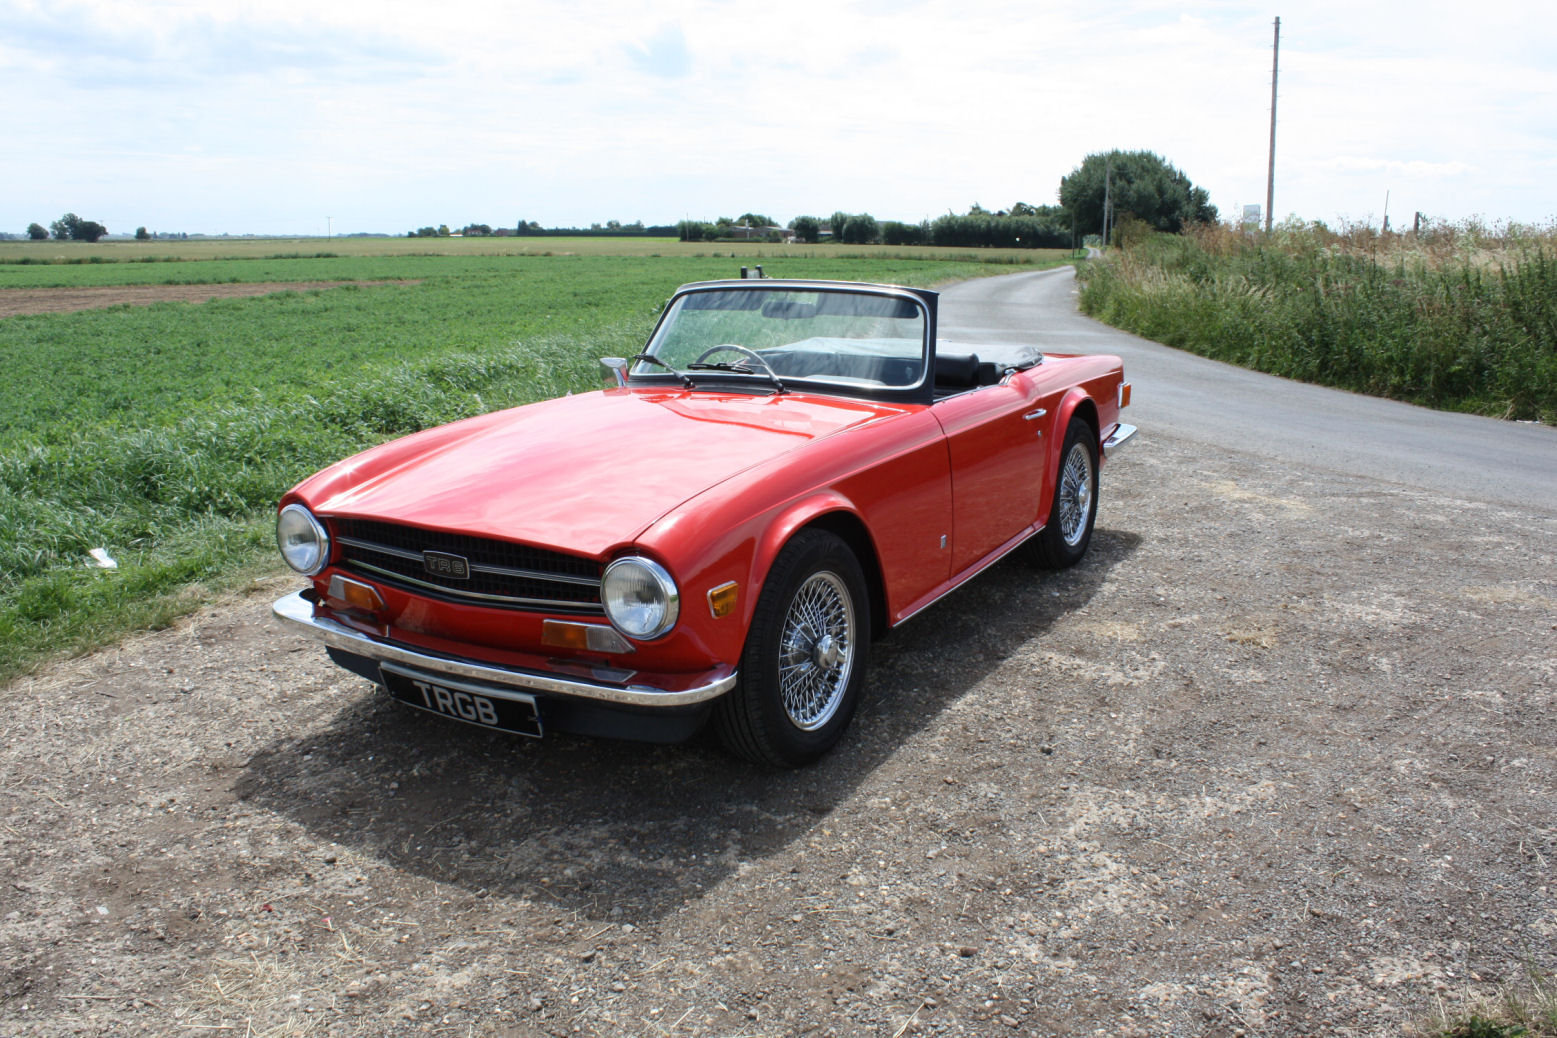 1973 1974 TRIUMPH TR6 GENUINE UK RHD CAR WITH OVERDRIVE SOLD (picture 1 of 6)